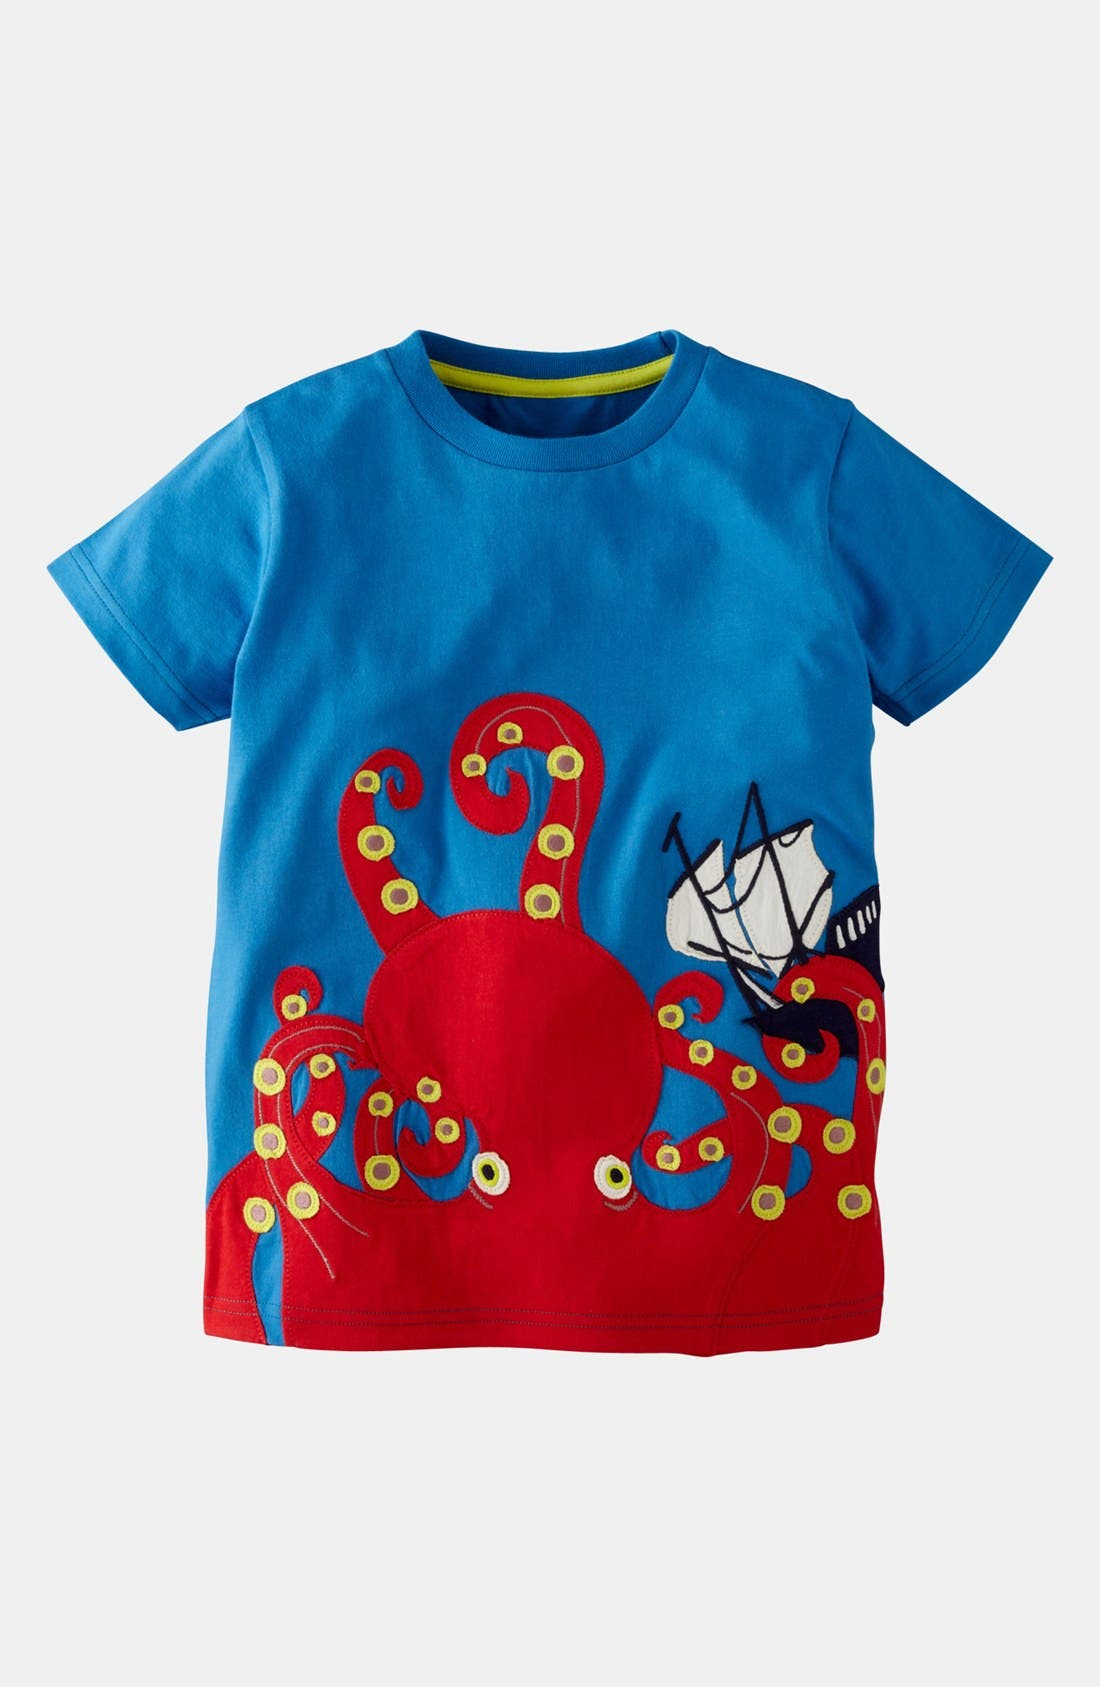 Main Image - Mini Boden 'Creatures of the Deep' T-Shirt (Toddler, Little Boys & Big Boys)